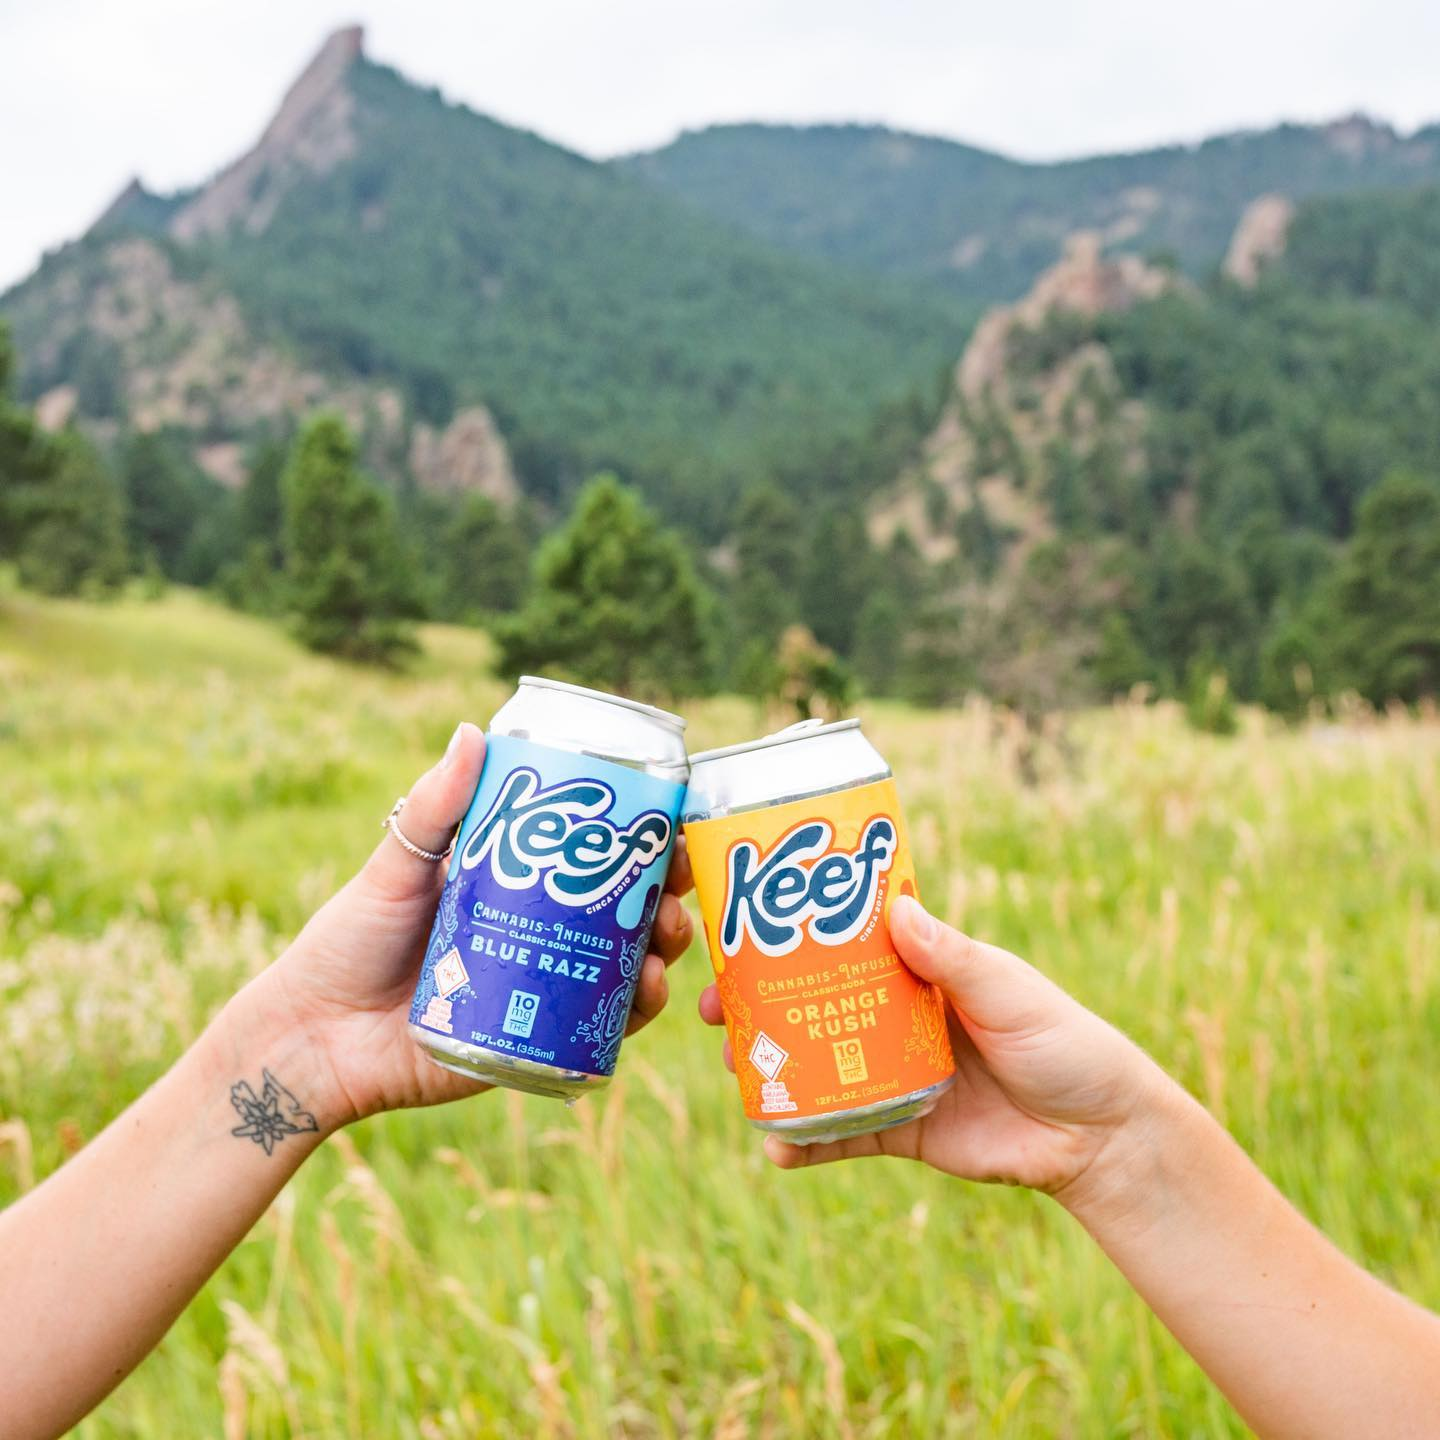 keef soda cans in nature